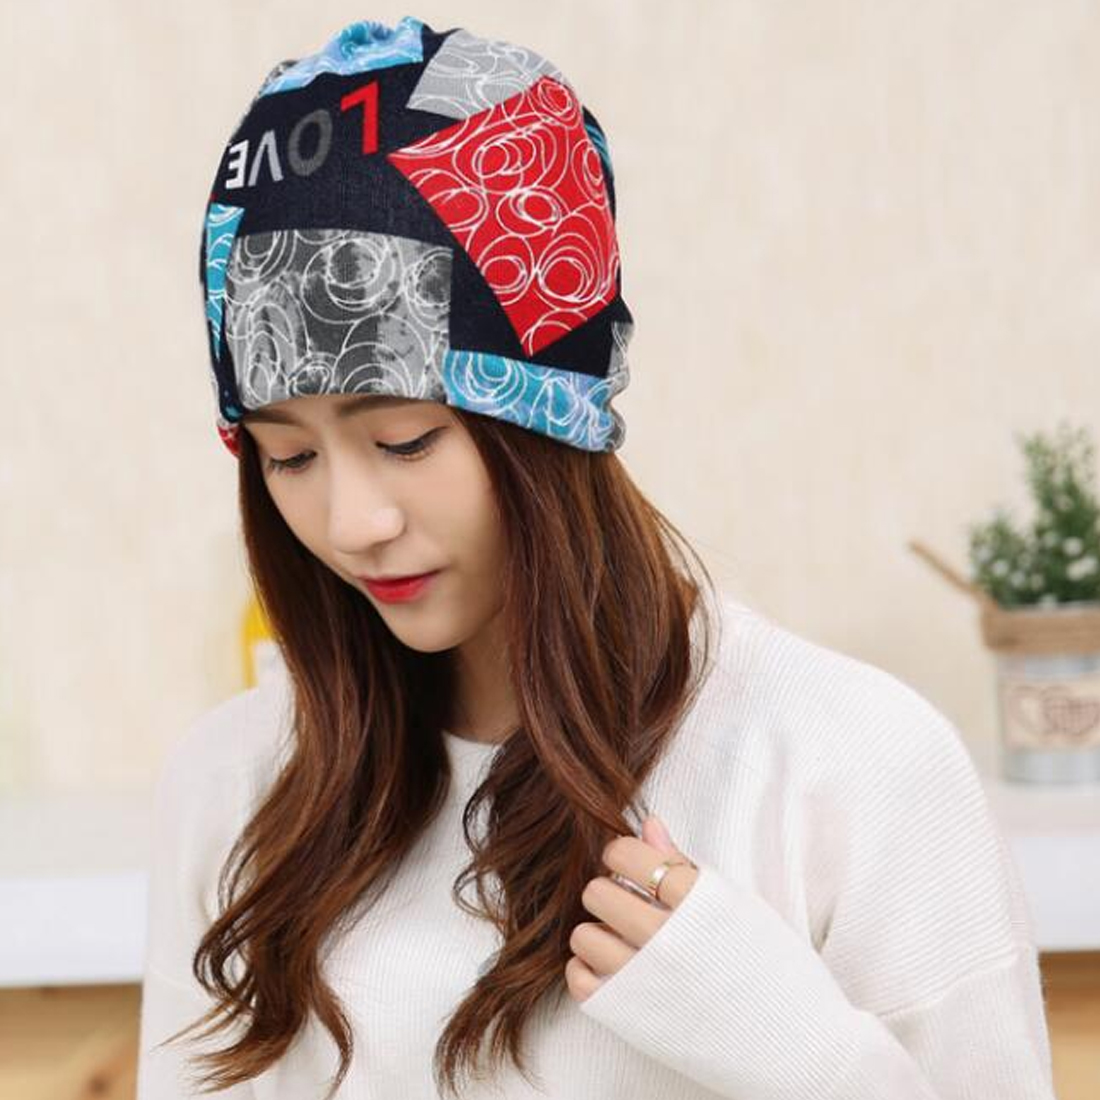 Fashion 2019 New Spring Autumn Women 39 s Hats Lattice Pattern Beanies Knitted Hat Ear Protector Cotton Warm Skullies in Men 39 s Skullies amp Beanies from Apparel Accessories